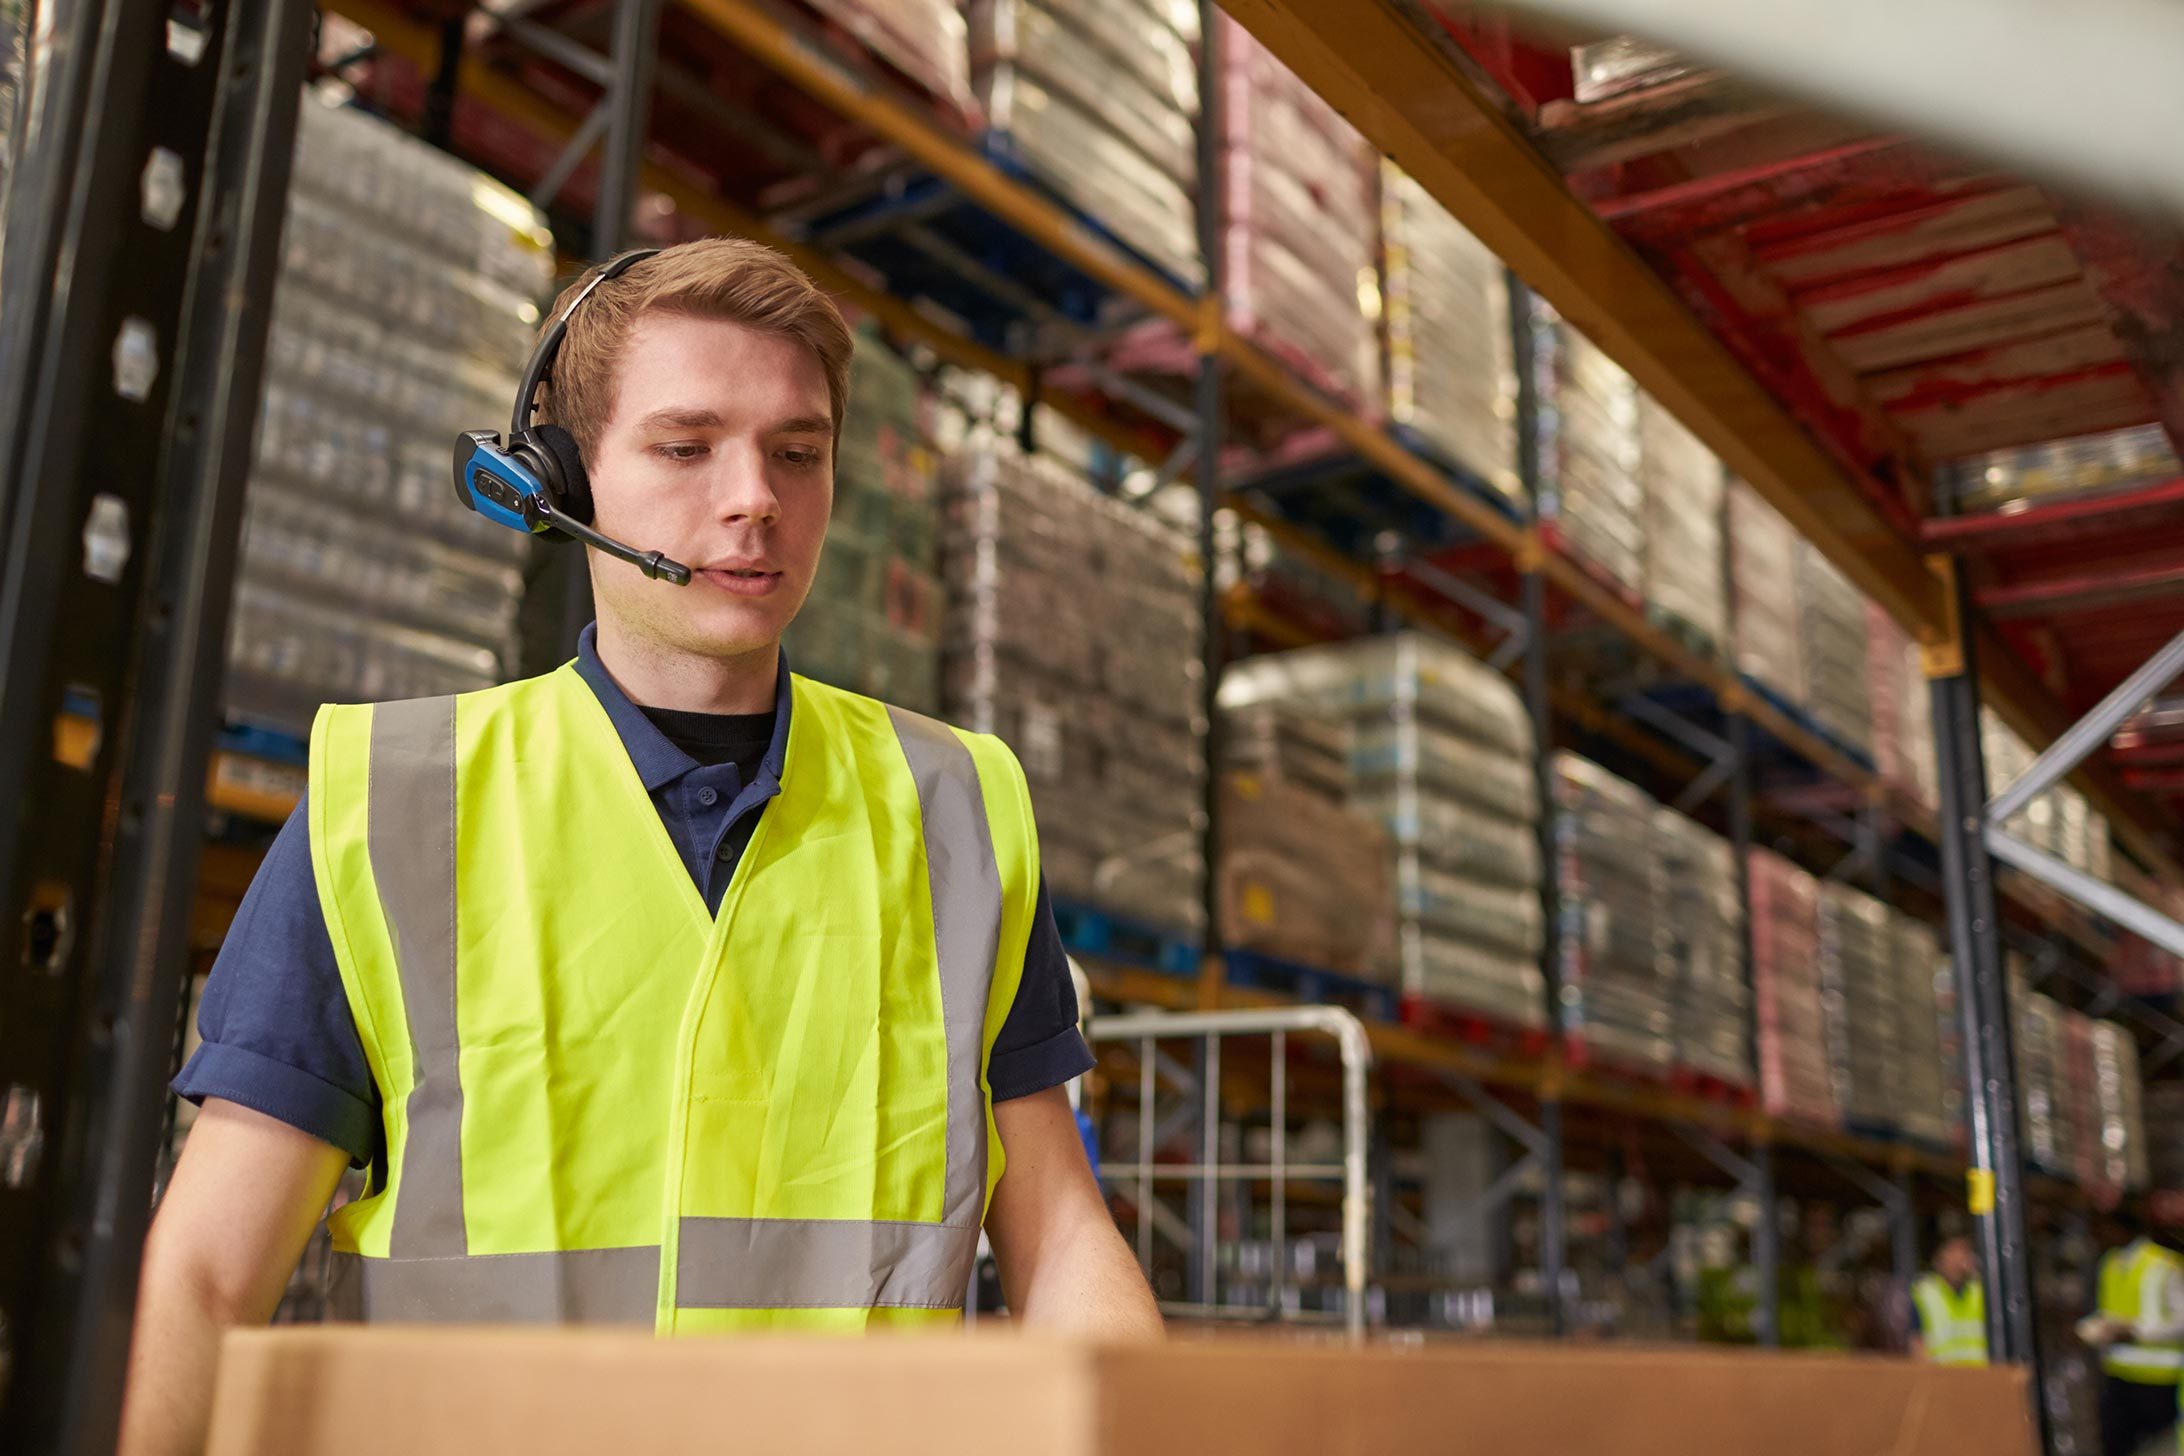 Warehouse Operations: Optimizing the Picking Process